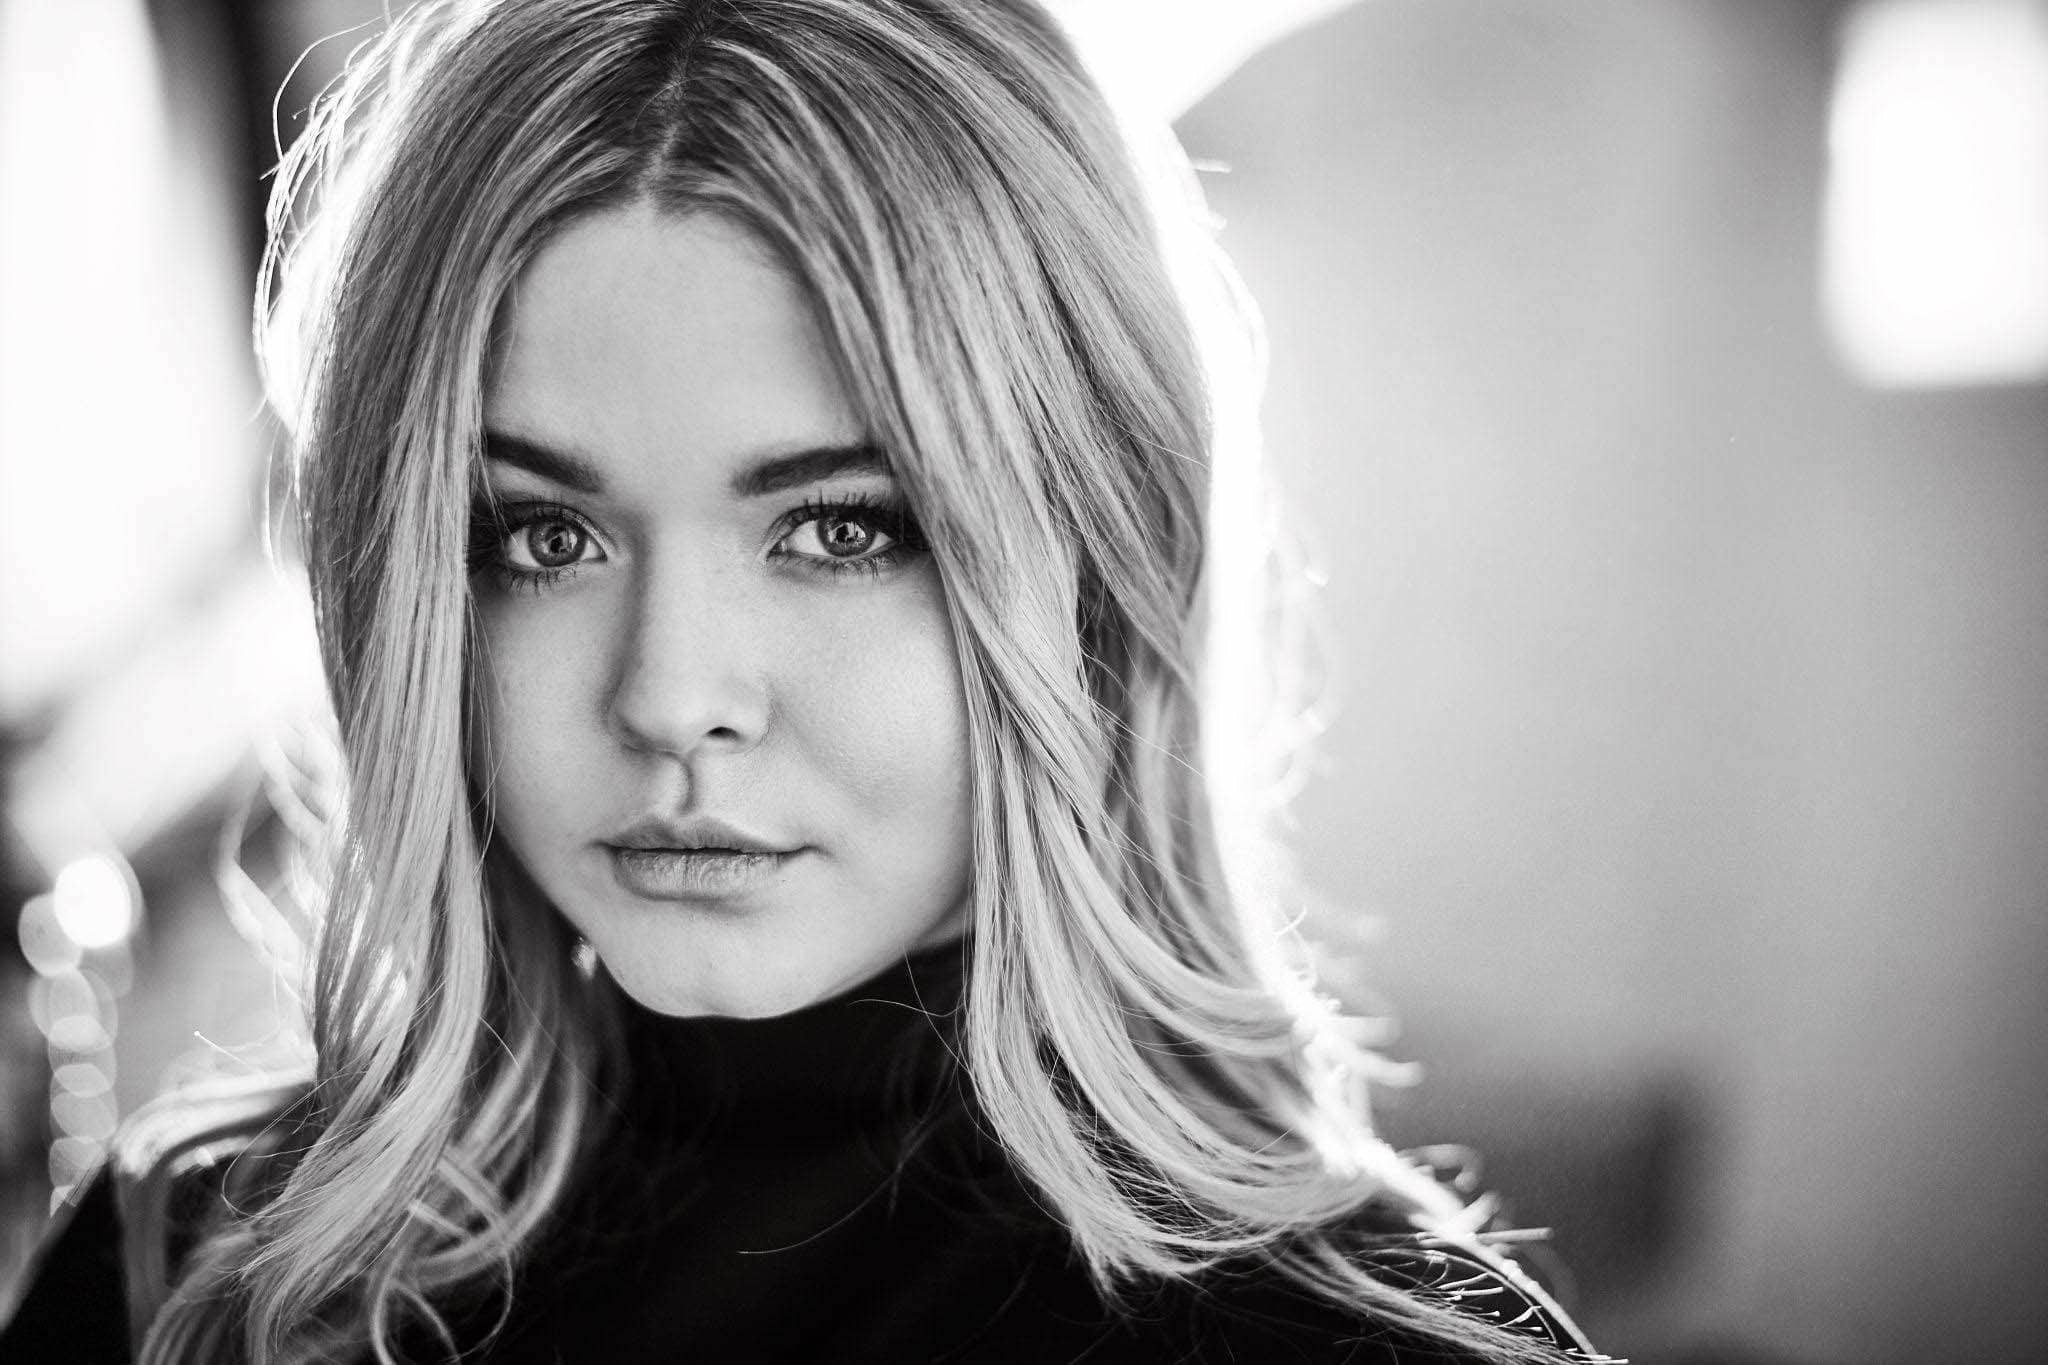 Sasha Pieterse Actresses People Background Wallpapers on 2048×1365